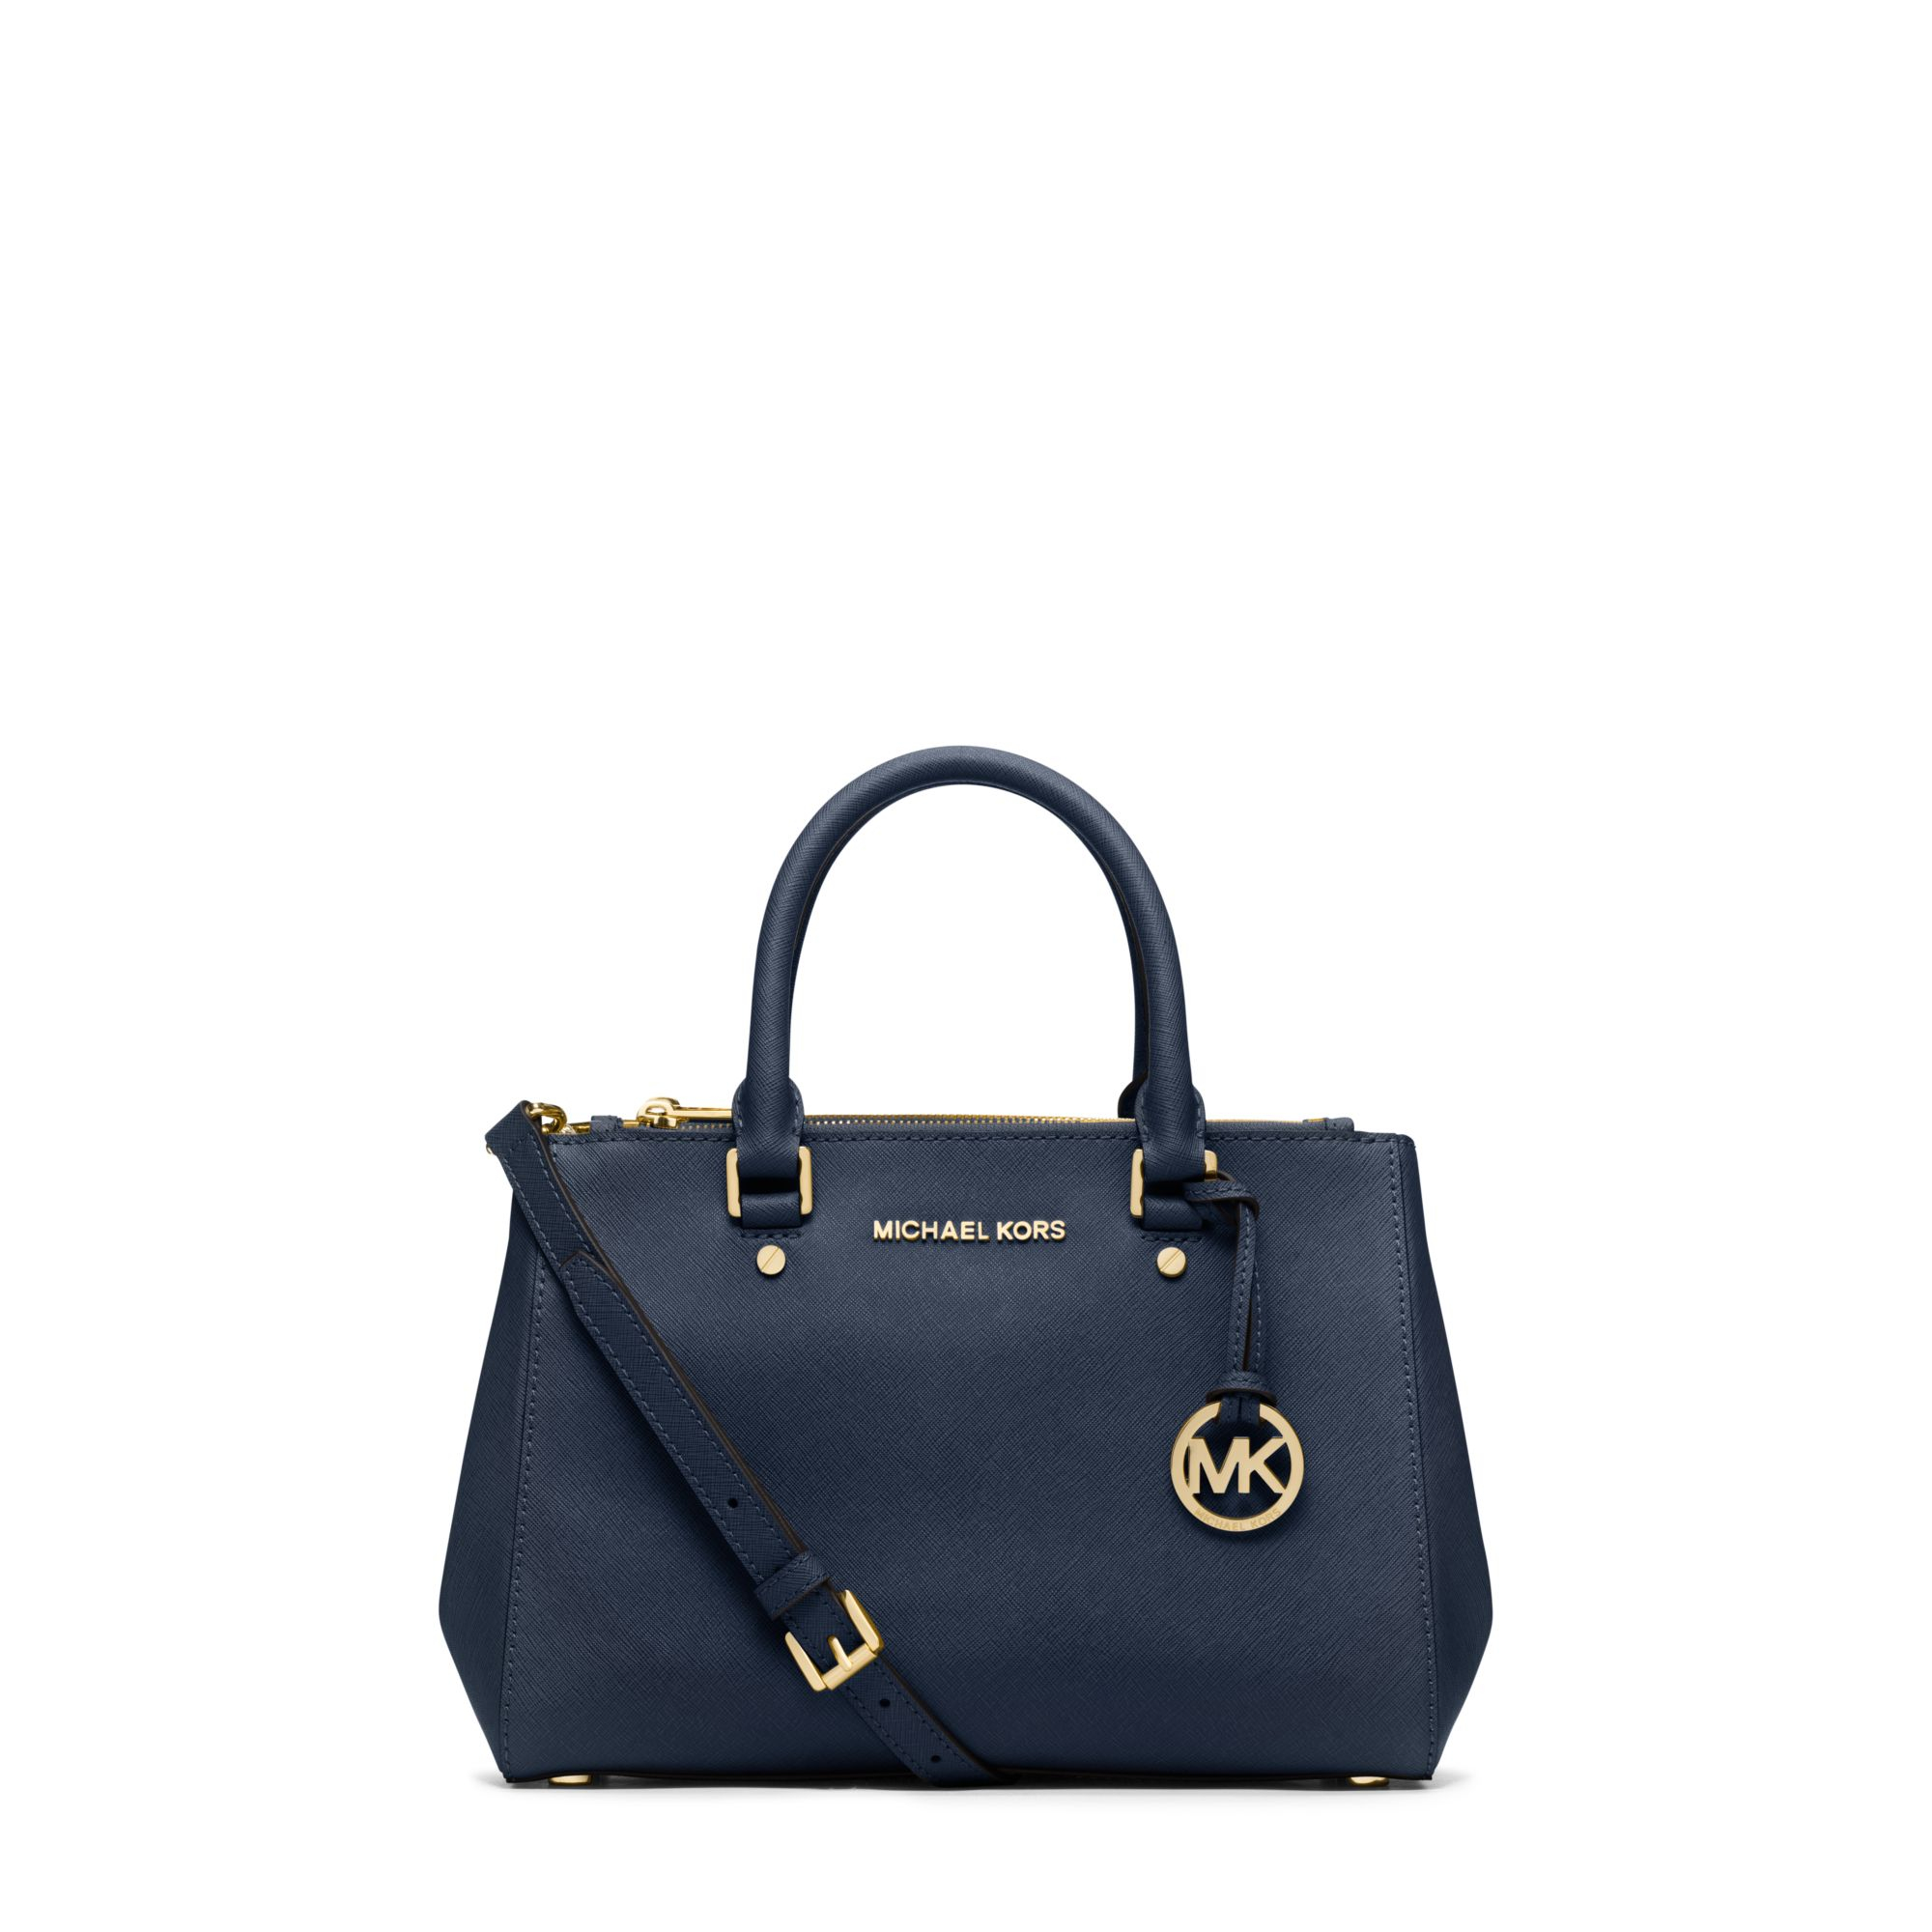 Michael kors Sutton Small Saffiano Leather Satchel in Blue | Lyst